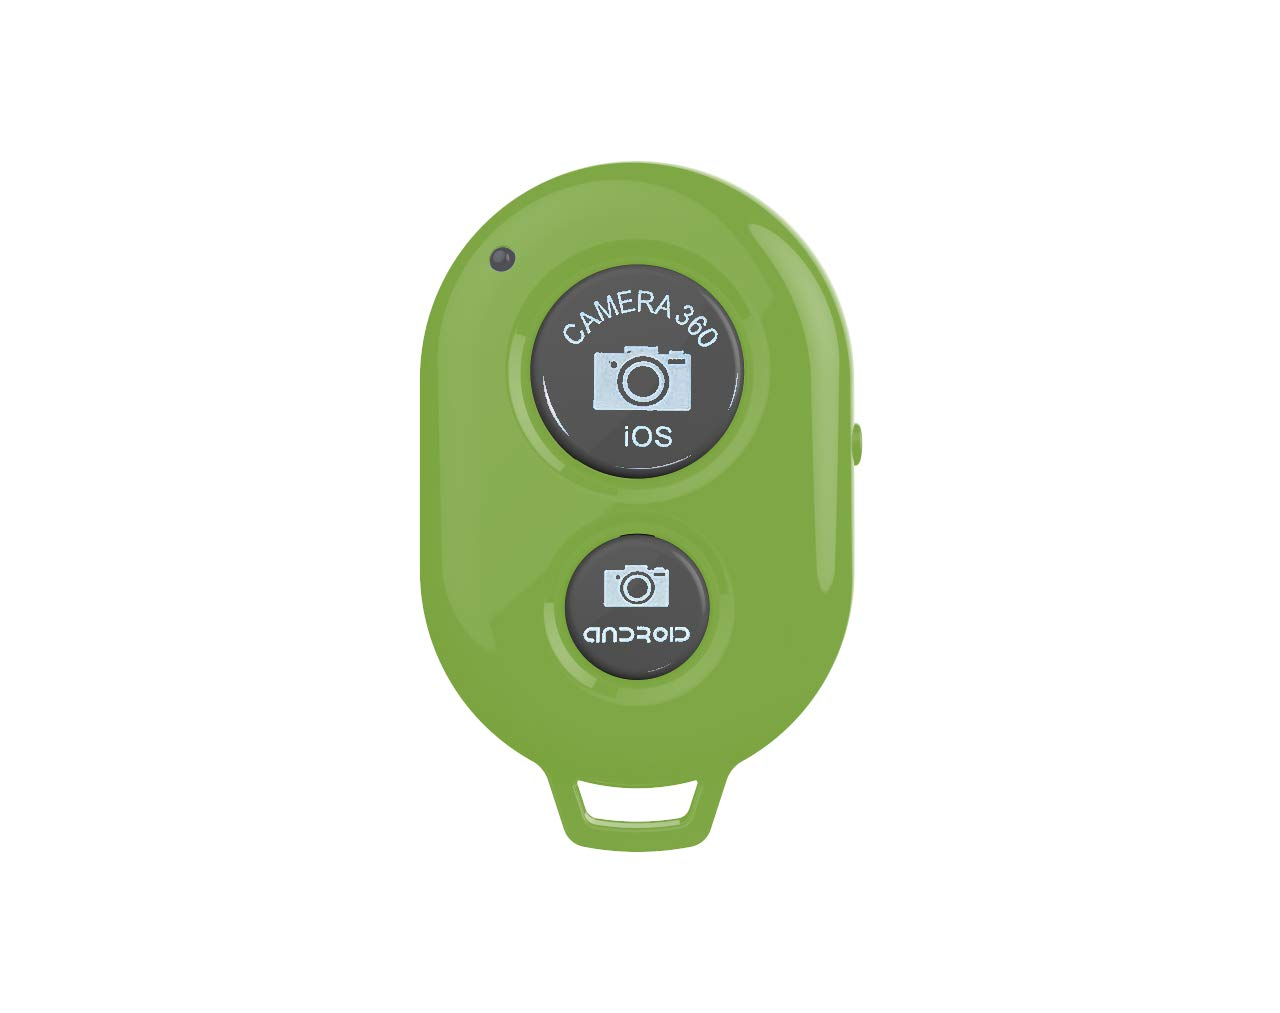 Camera Shutter Remote Control with Bluetooth Wireless Technology - Create Amazing Photos and Videos Hands-Free - Works with Most Smartphones and Tablets (iOS and Android)+1pcs Wrist Strap (Green)